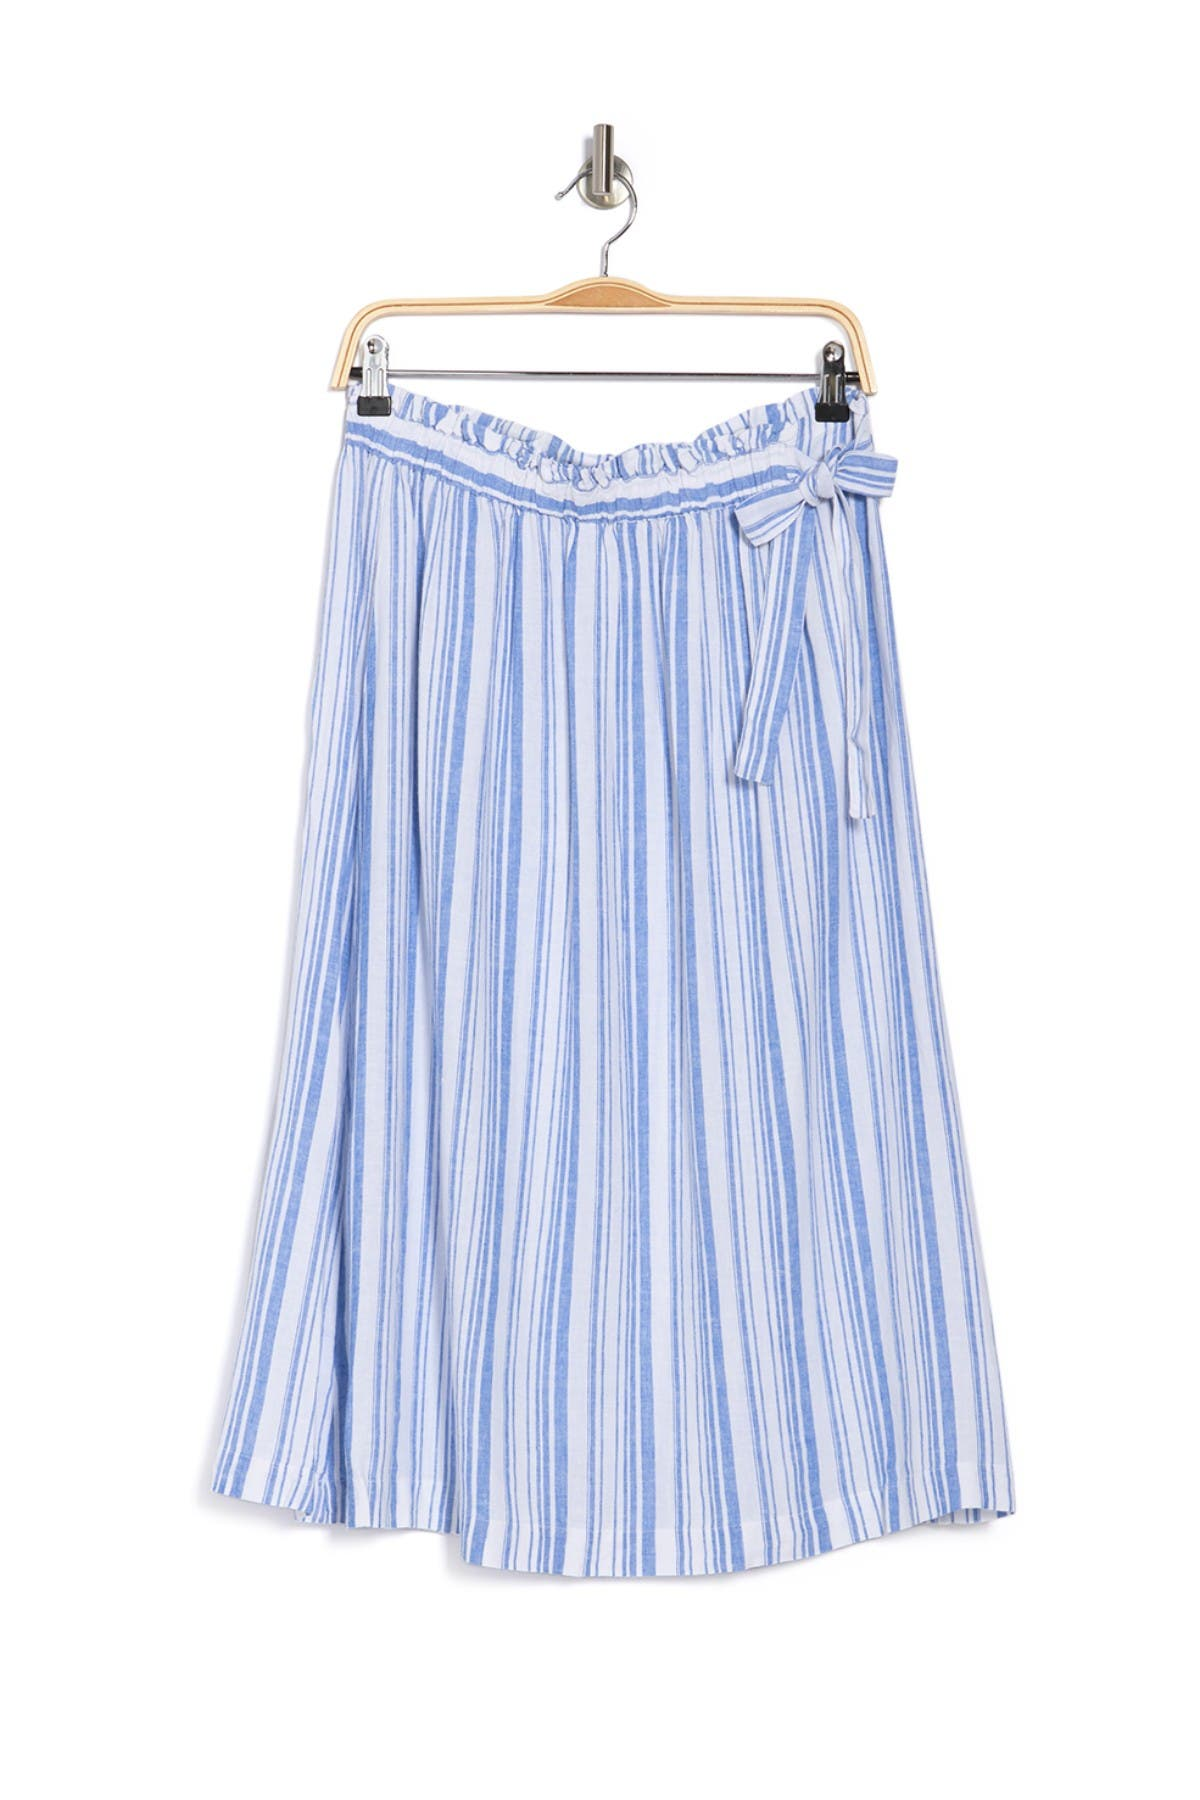 Image of Tommy Bahama Shell Yea Striped Linen Blend Midi Skirt